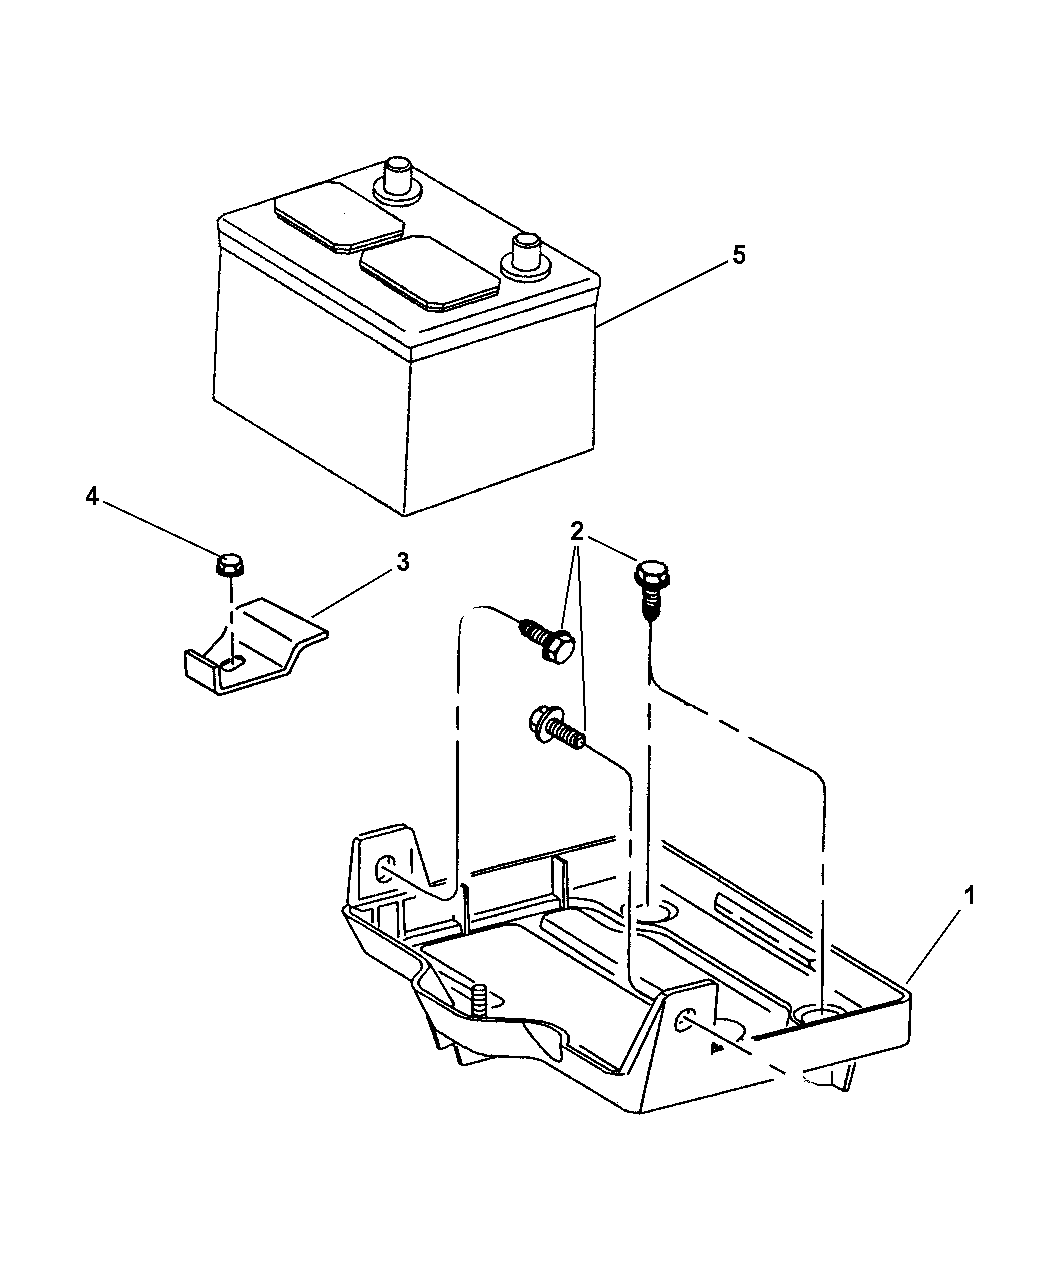 4786689 Genuine Mopar Wiring Battery Negative Plymouth Prowler Diagrams 2002 Chrysler Trays Cables